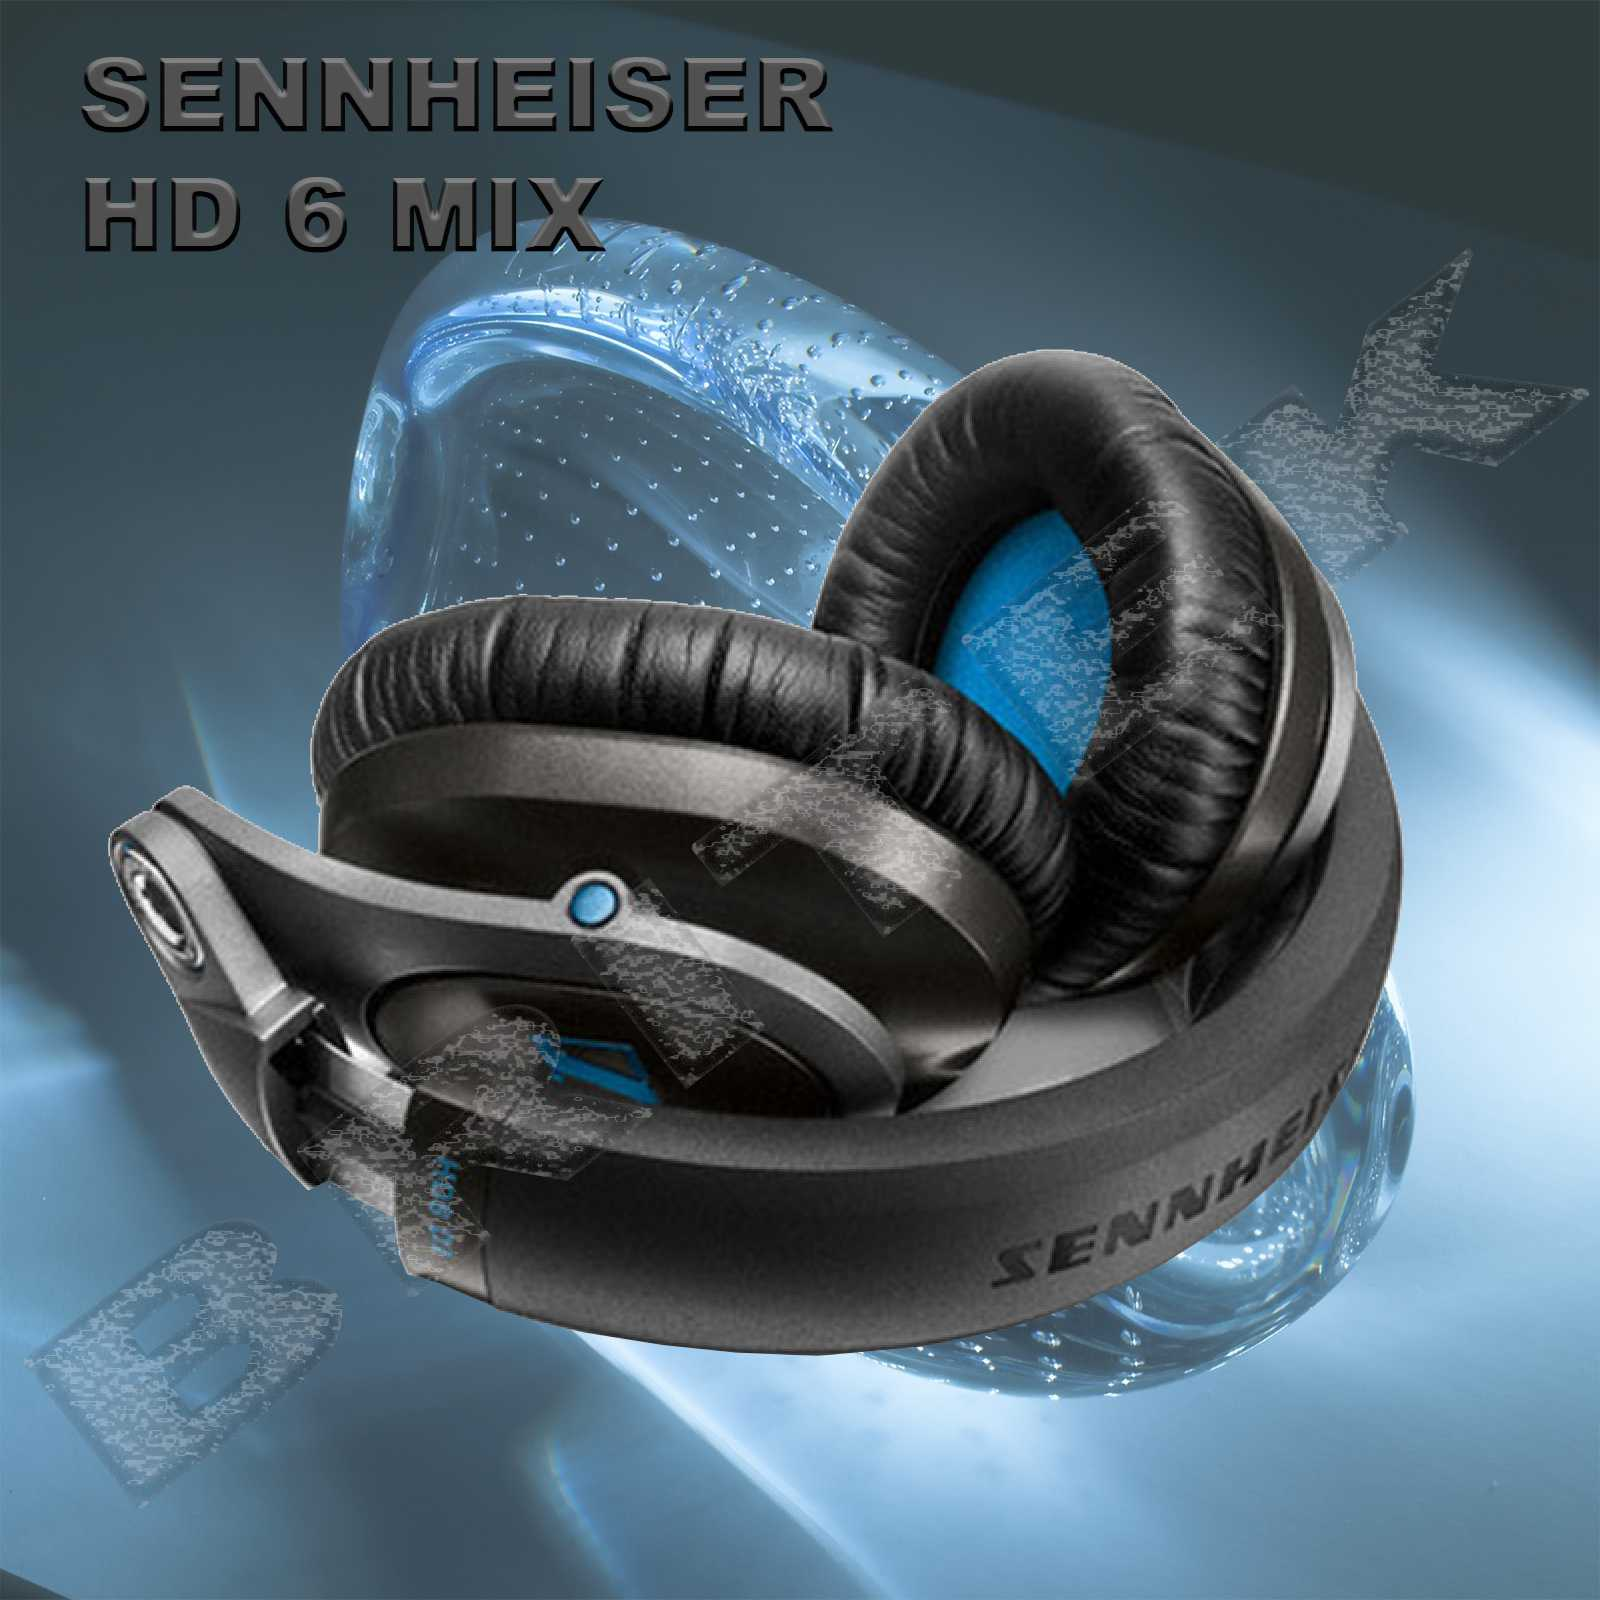 SENNHEISER HD 6 MIX